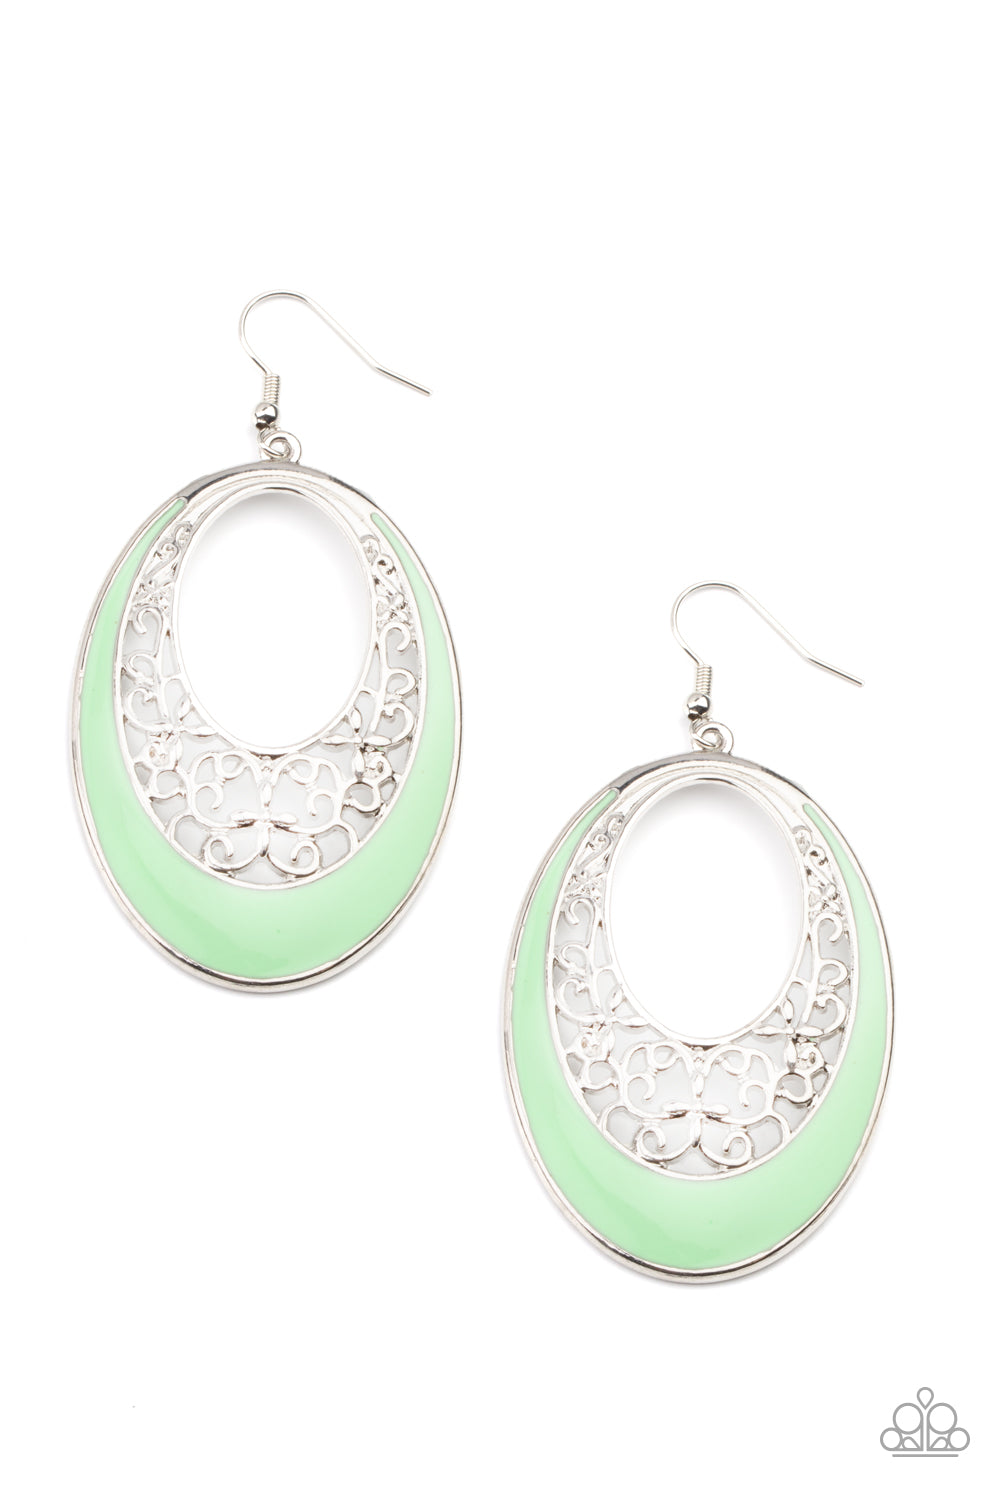 Paparazzi Orchard Bliss - Green Earrings